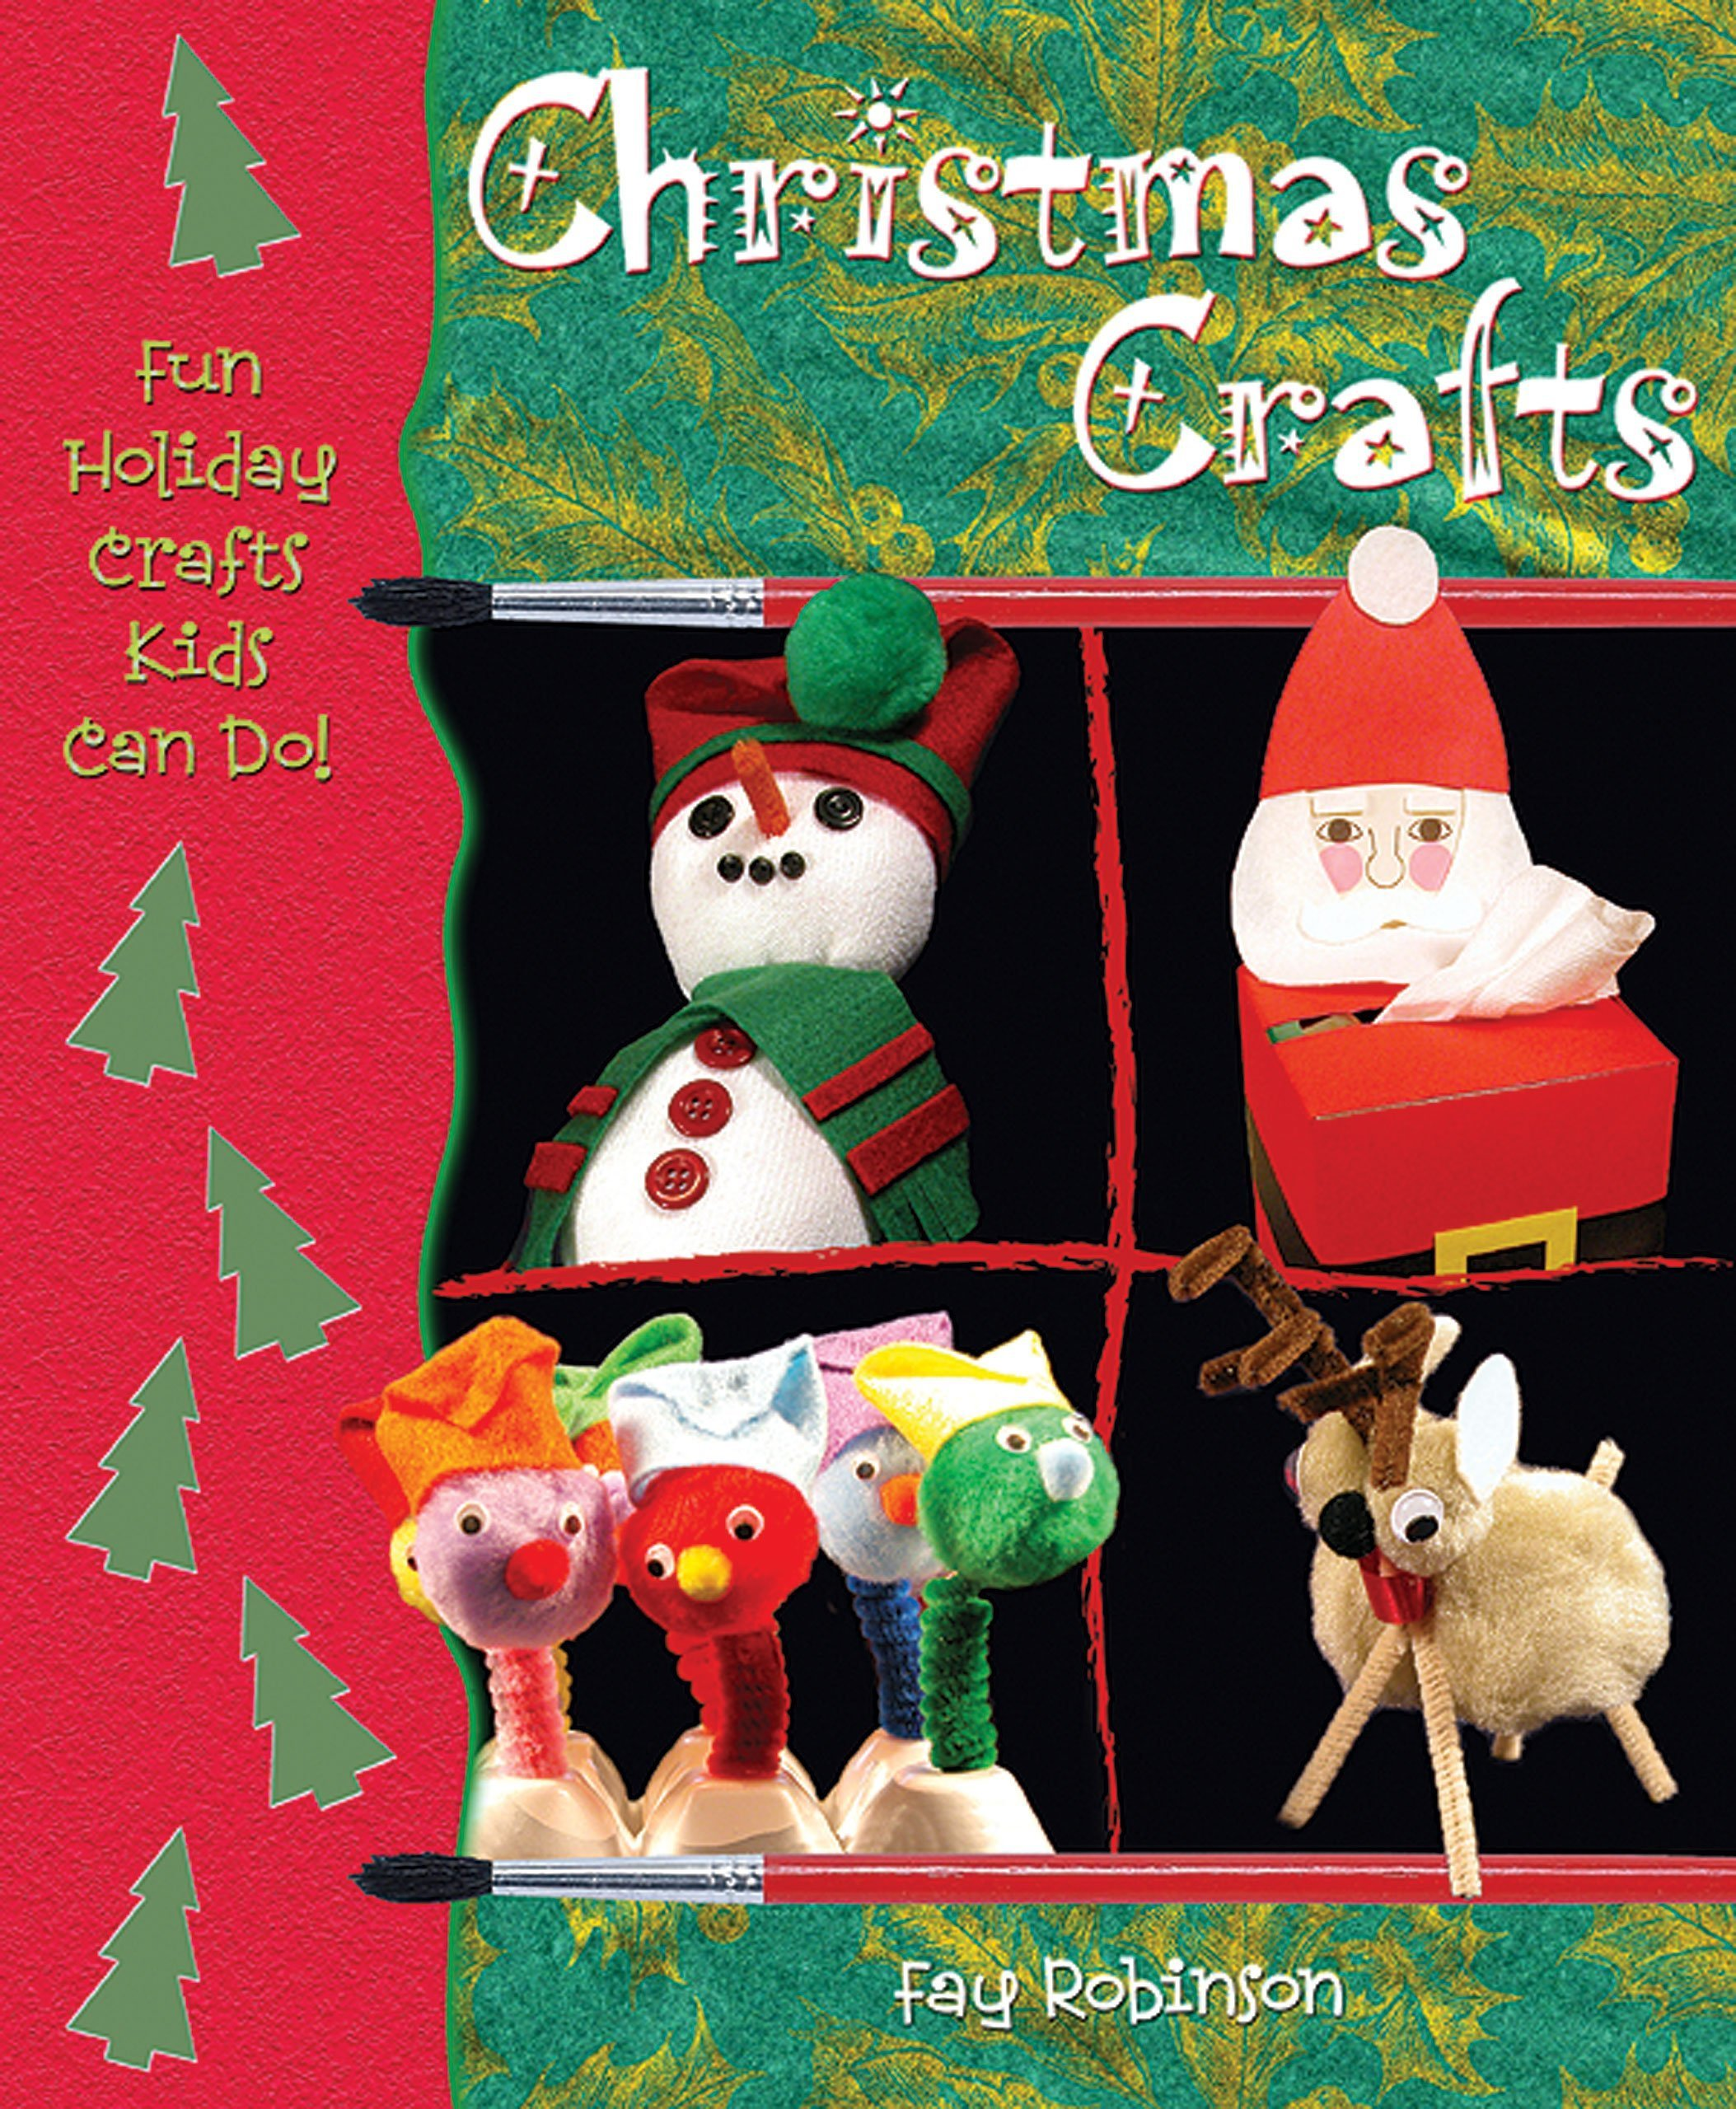 Childrens Christmas Craft Ideas.Christmas Crafts Fun Holiday Crafts Kids Can Do Fay